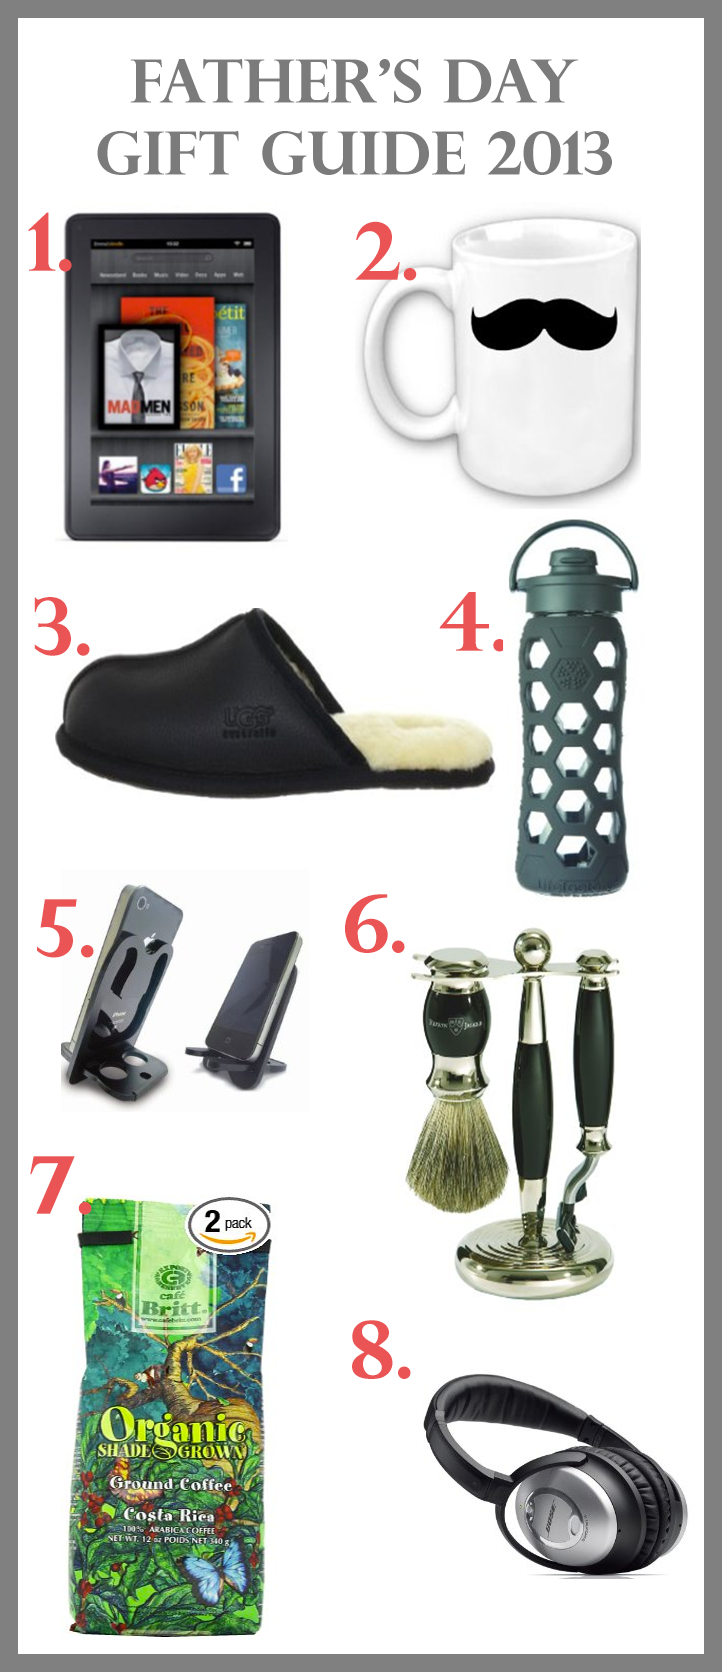 Father's Day Gift Guide 2013 - Pin it!